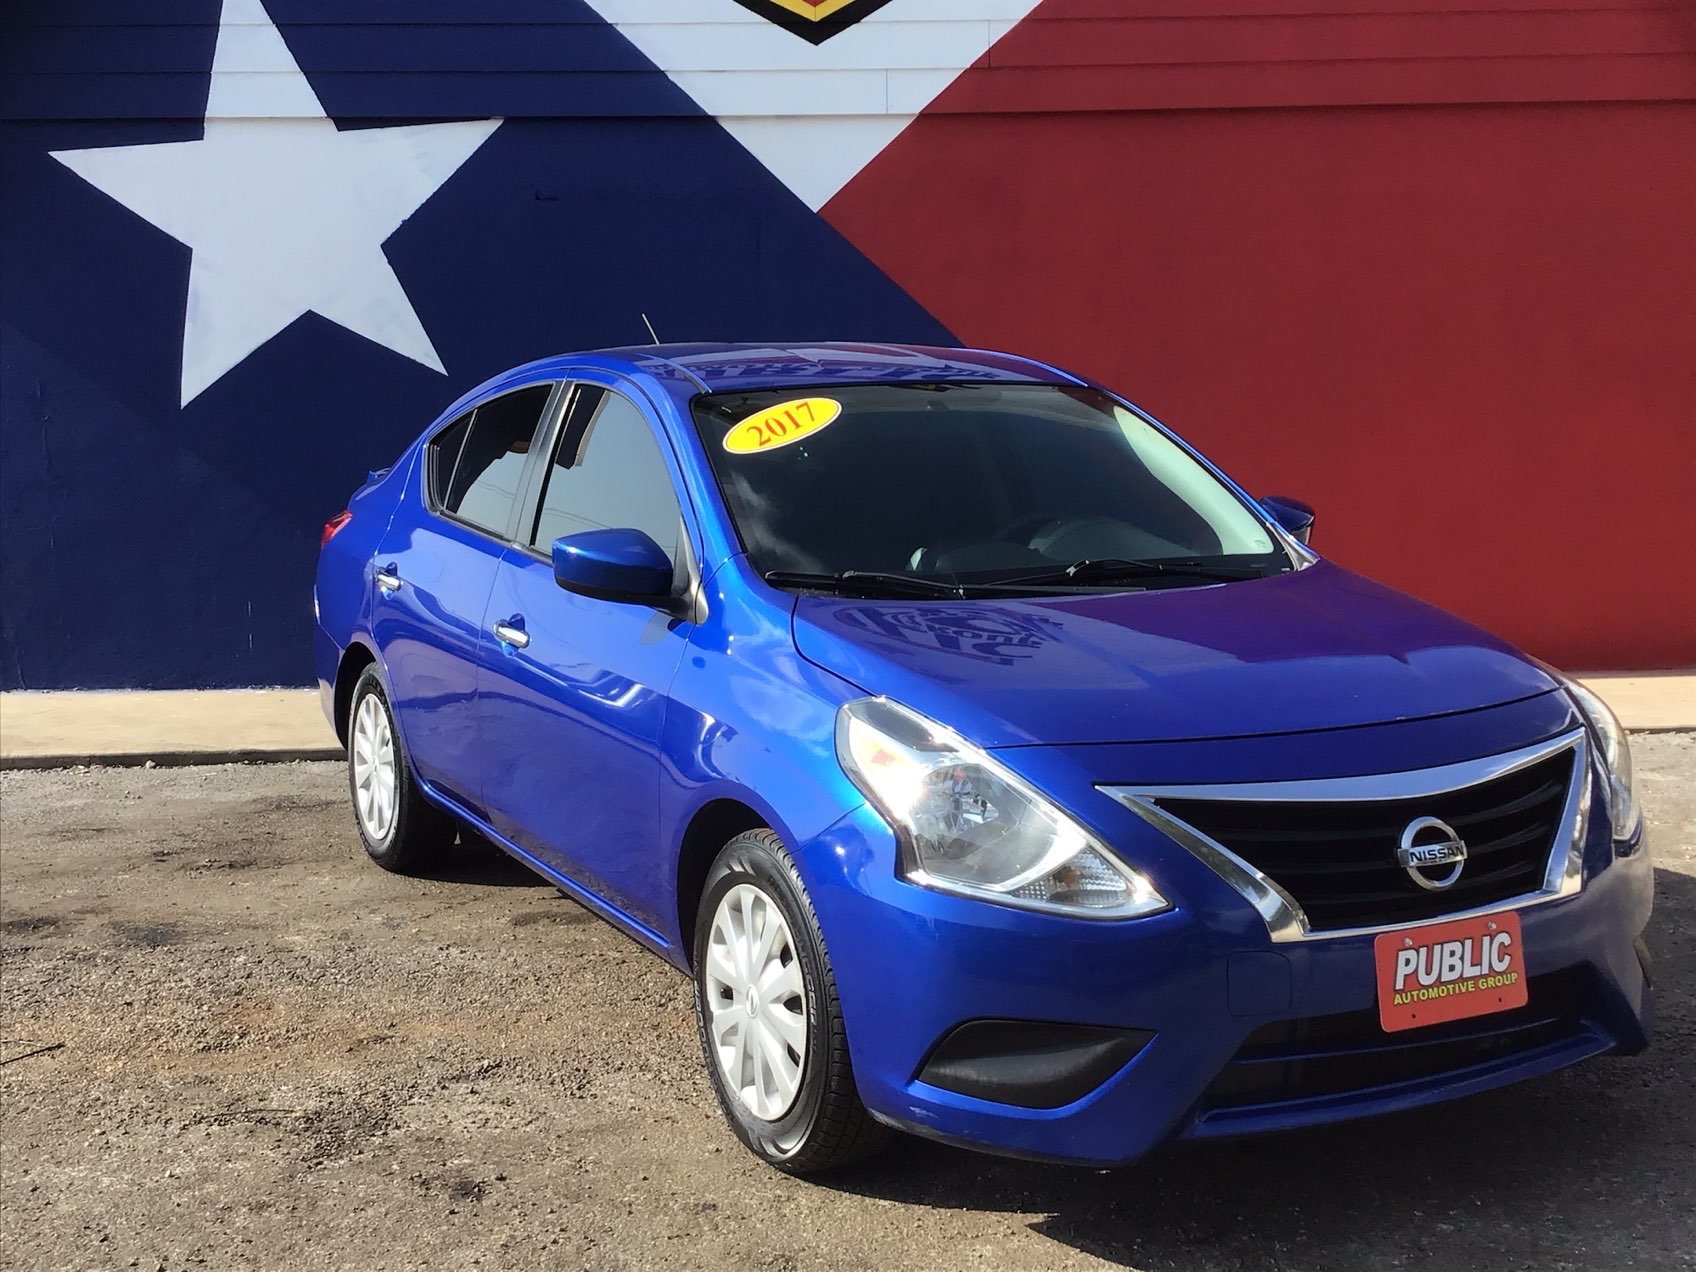 used vehicle - Sedan NISSAN VERSA 2017